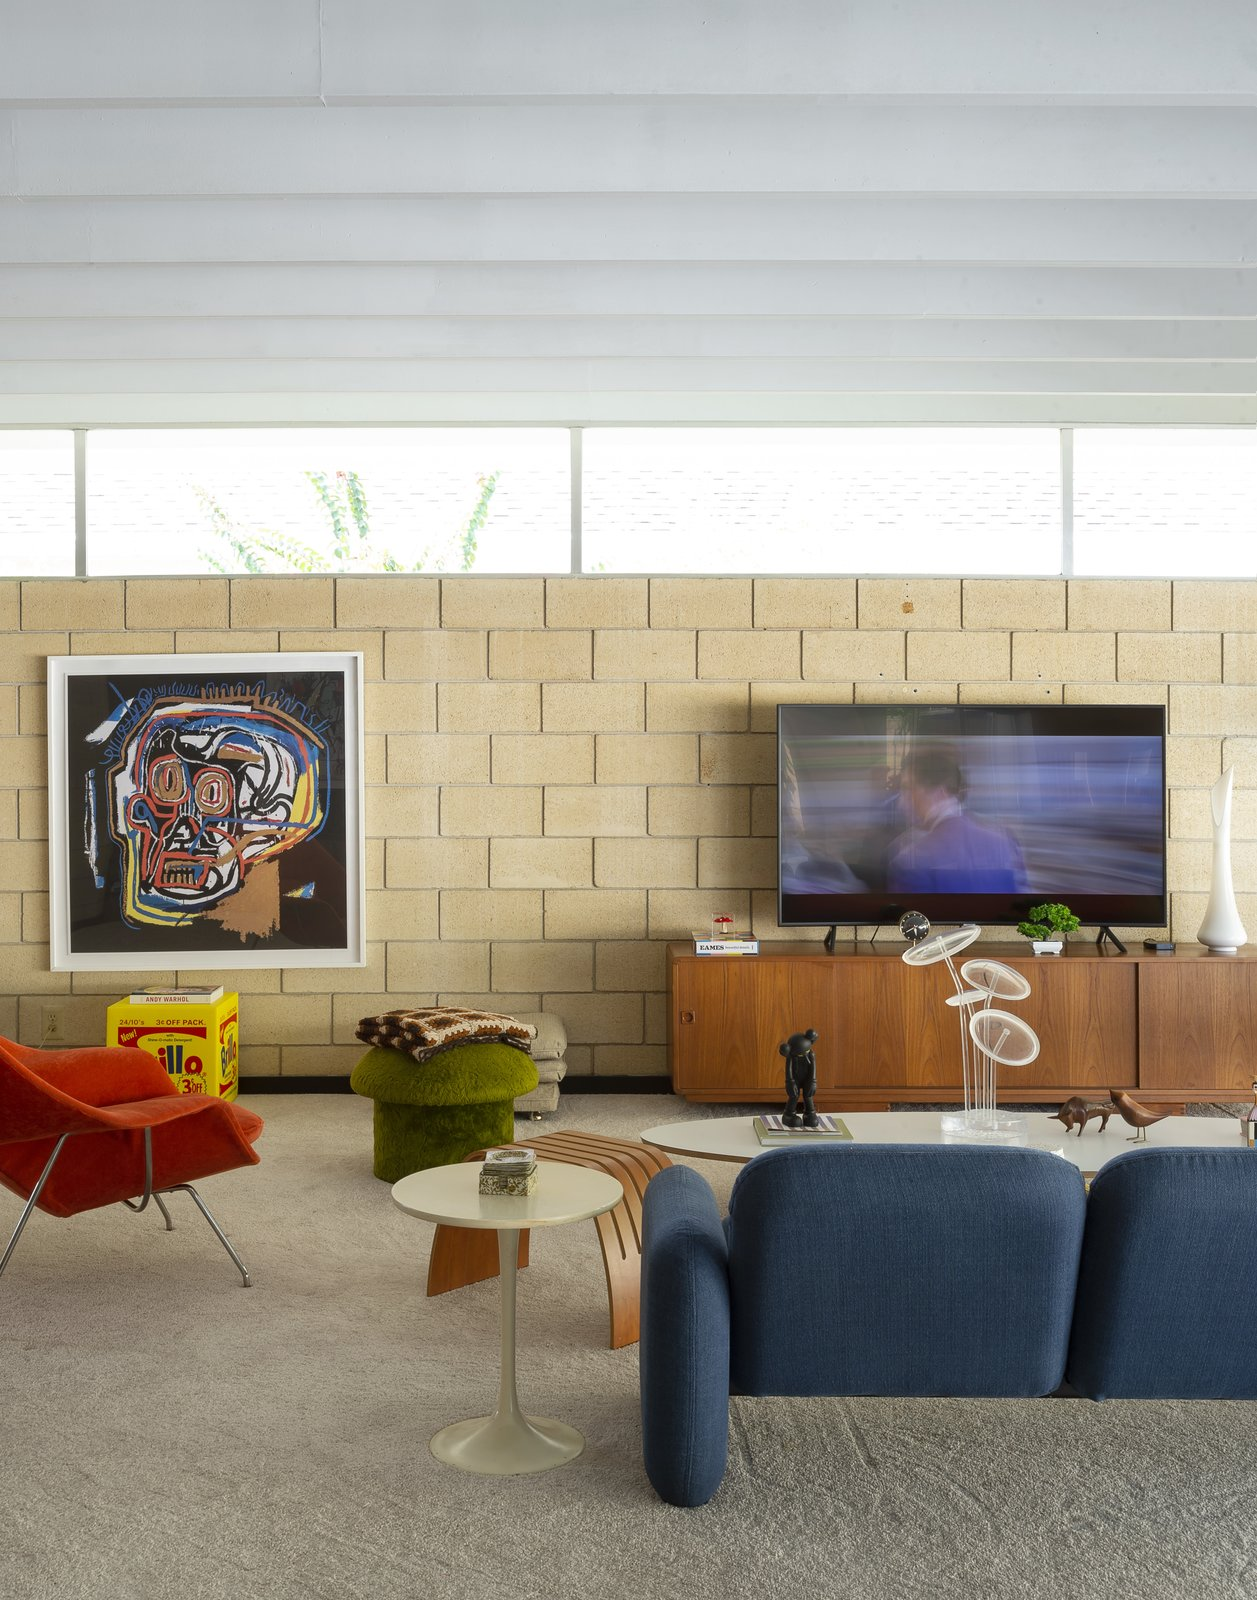 """Living Room, Coffee Tables, End Tables, Sectional, and Carpet Floor A print of Jean Michael Basquiat's """"Head  The Ellison House from Pop Art, Street Art, and Space-Age Furniture Collide at a Painter's Midcentury Ranch Home in Florida"""